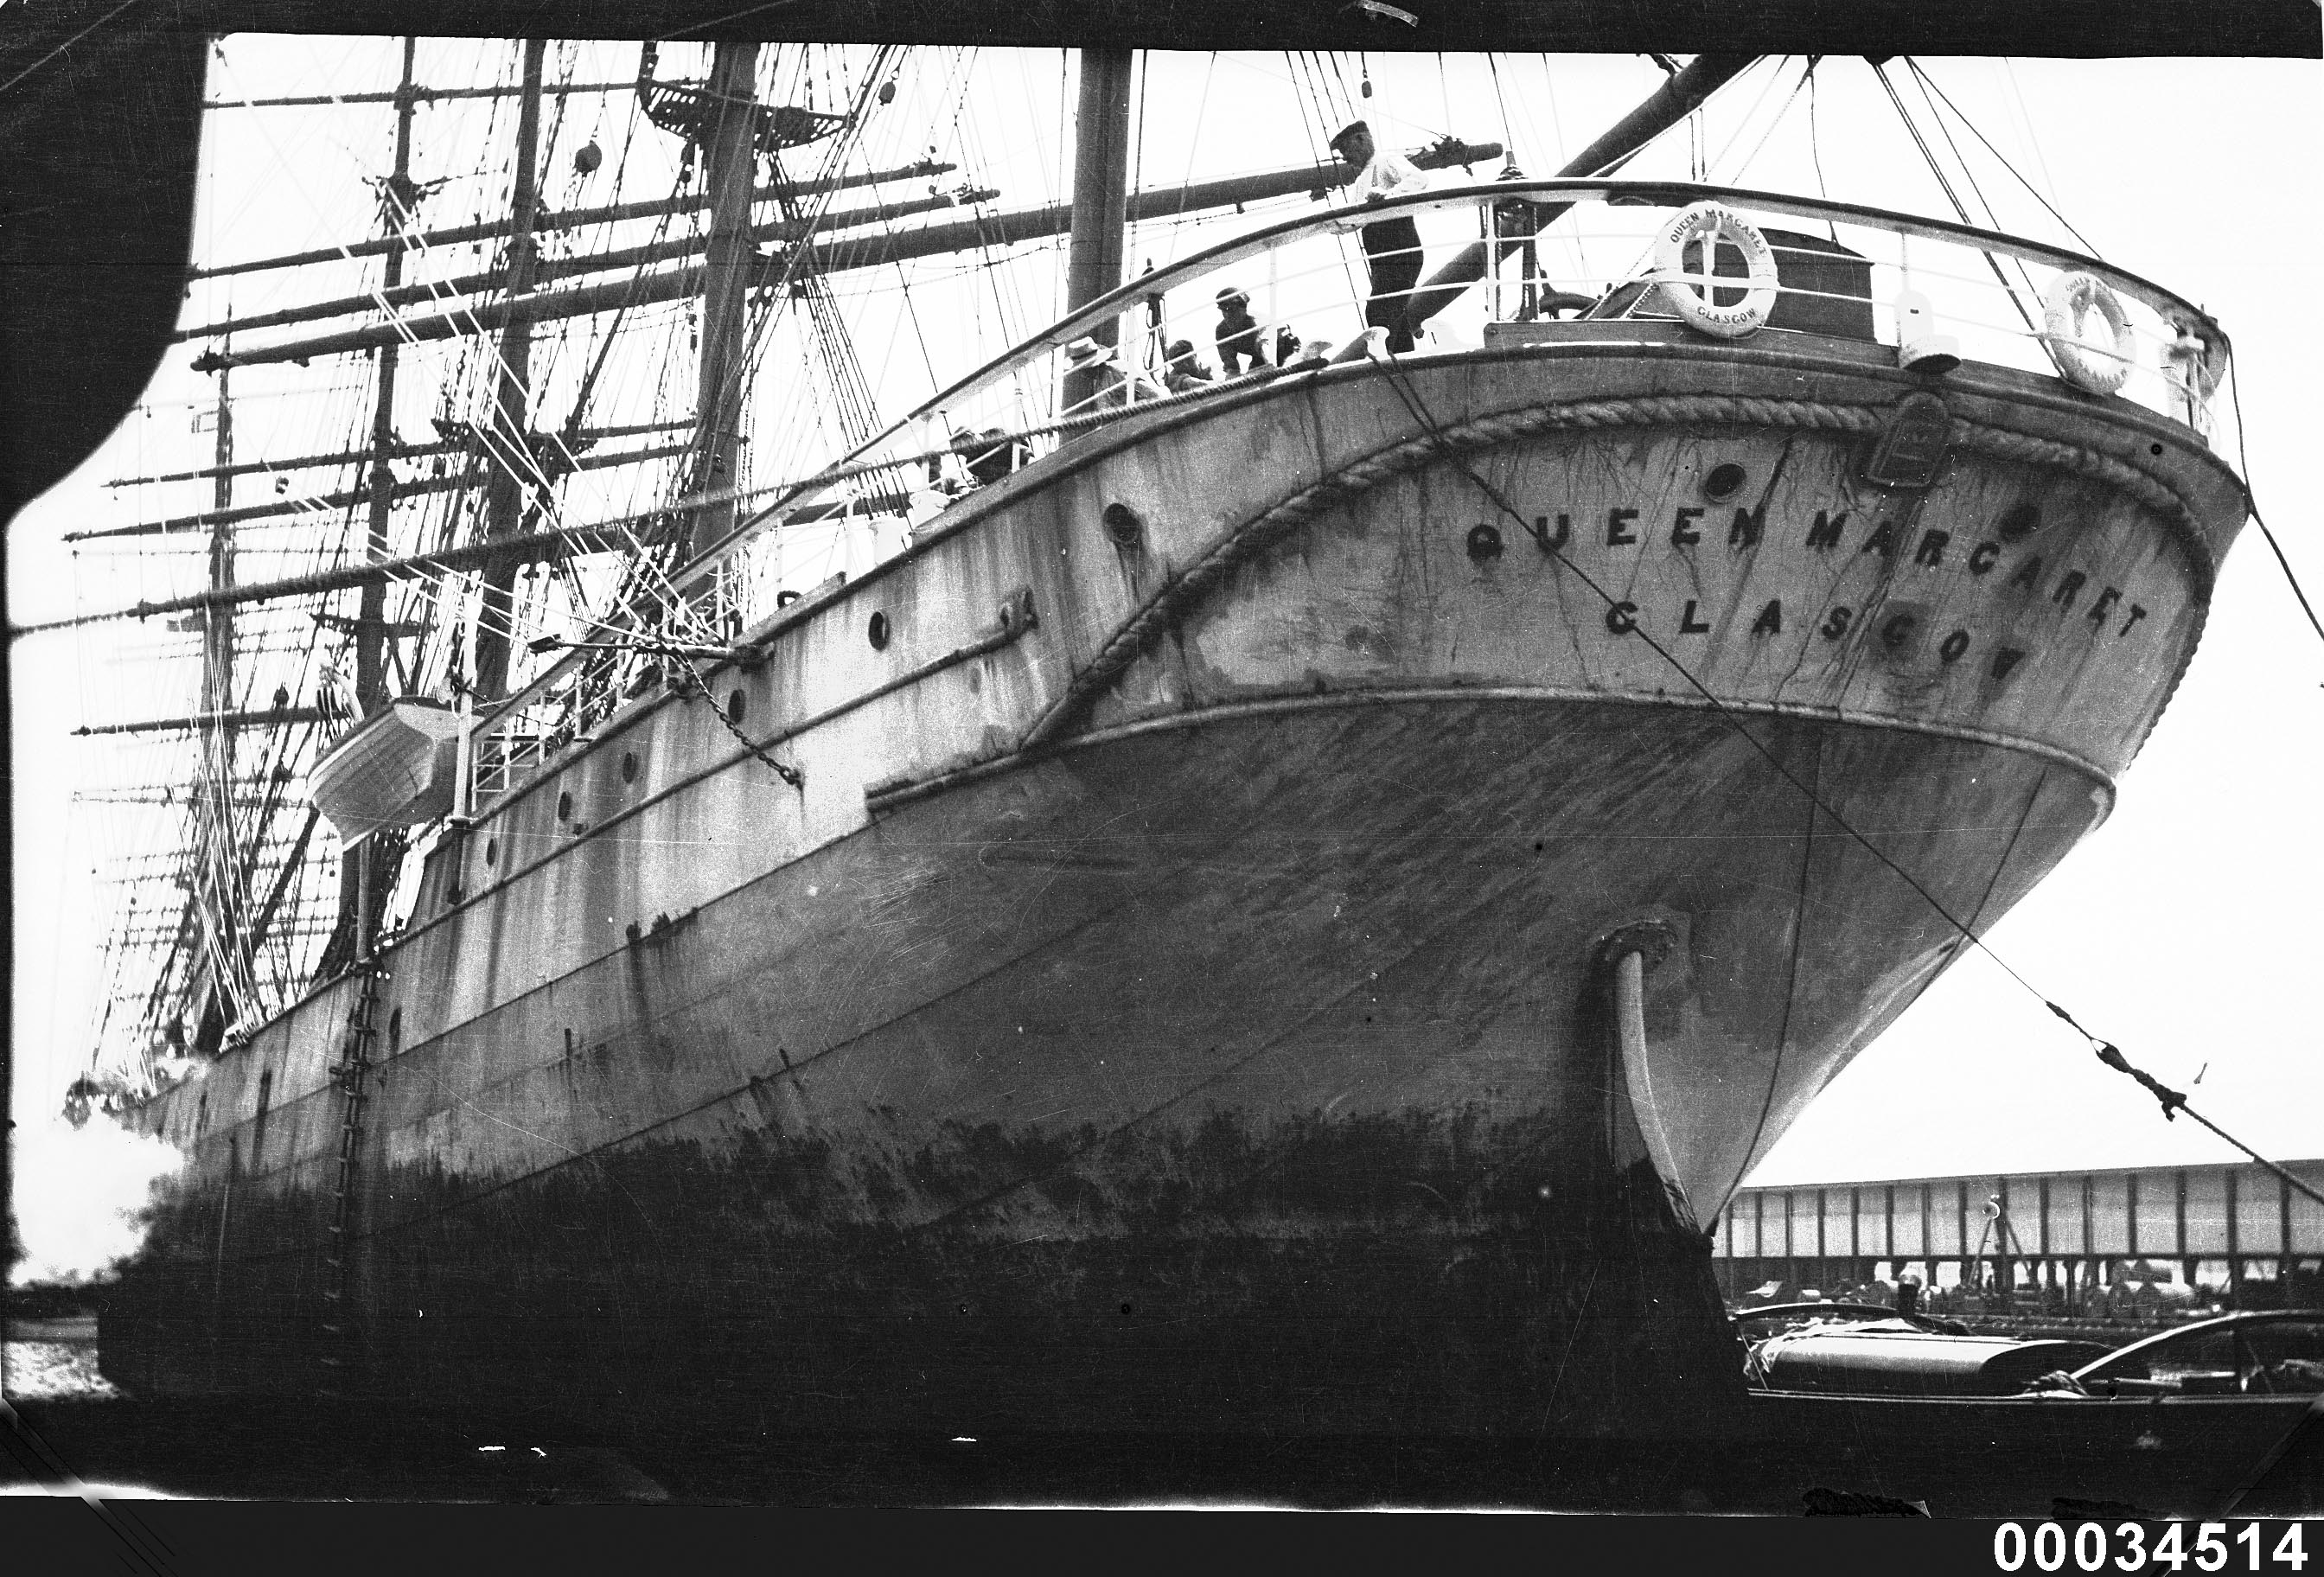 Four-masted barque QUEEN MARGARET at a wharf